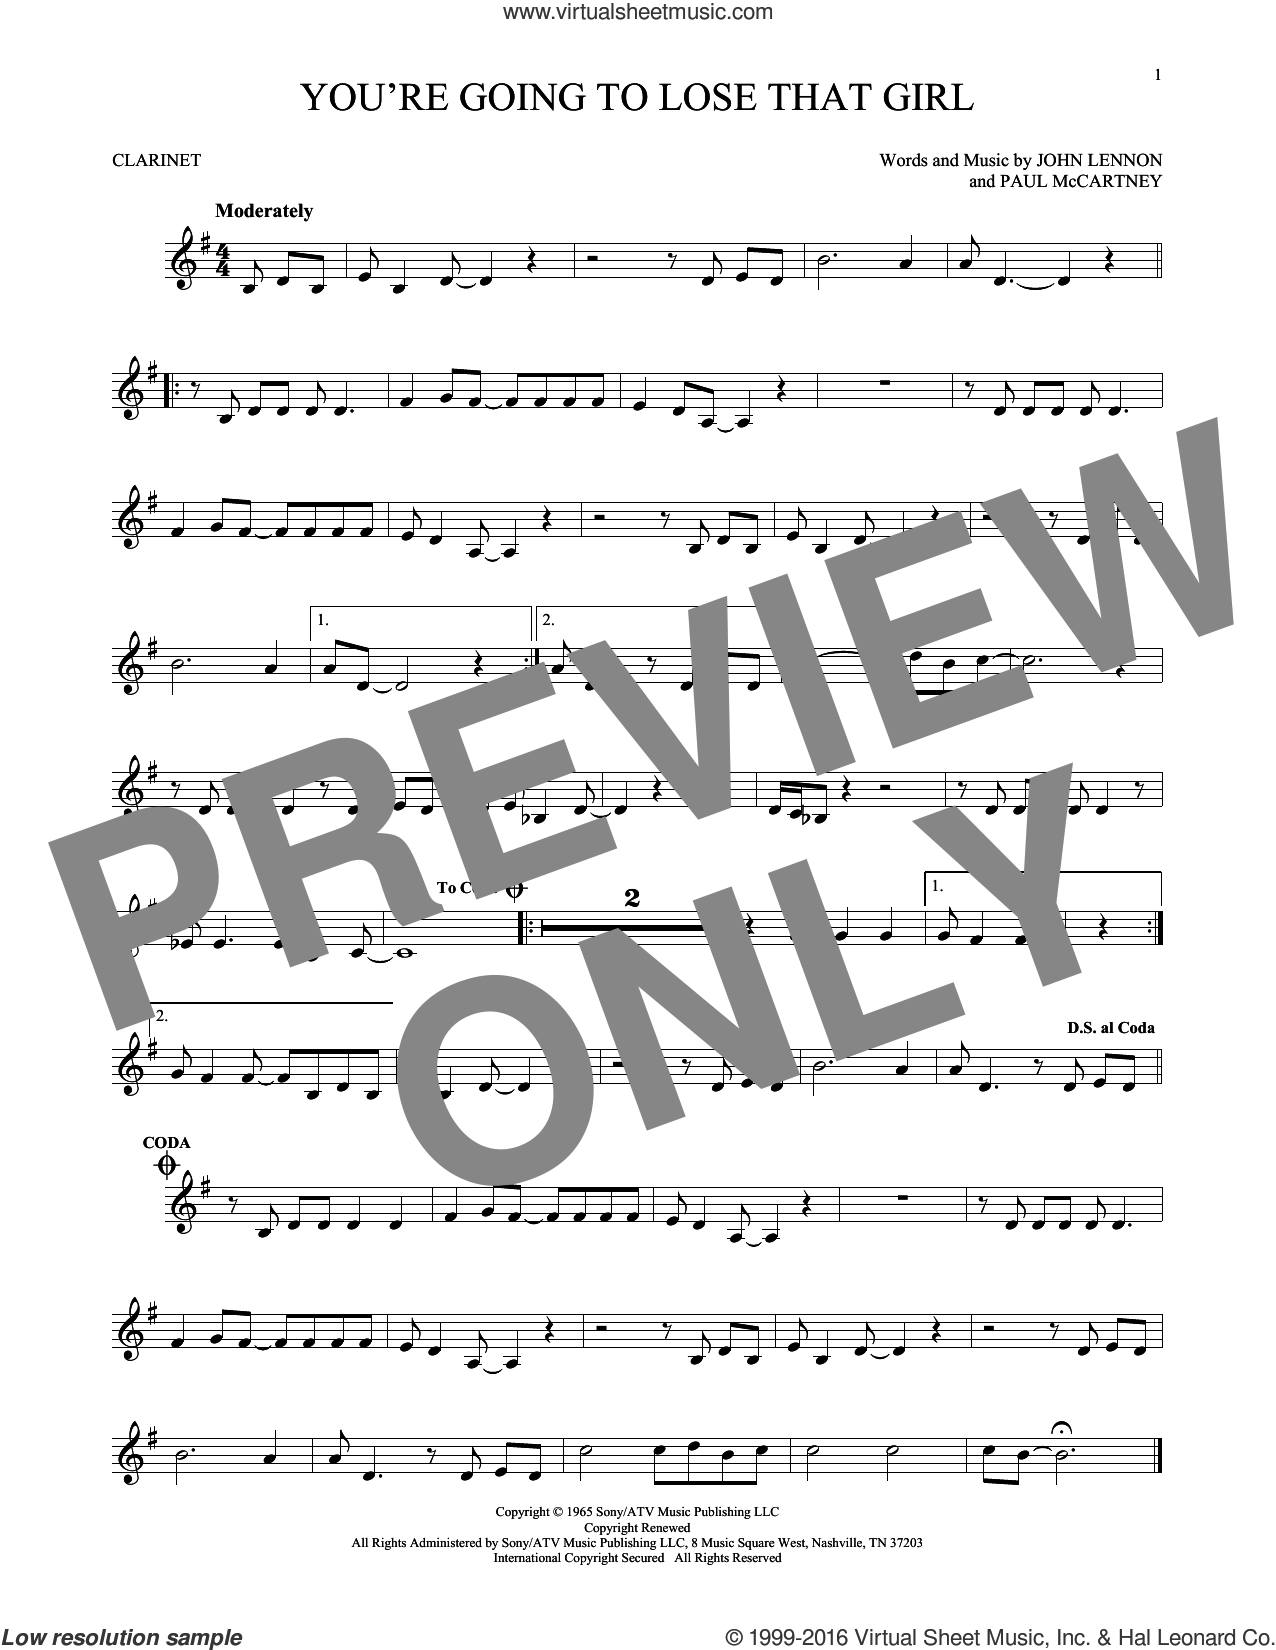 You're Going To Lose That Girl sheet music for clarinet solo by The Beatles, John Lennon and Paul McCartney, intermediate skill level